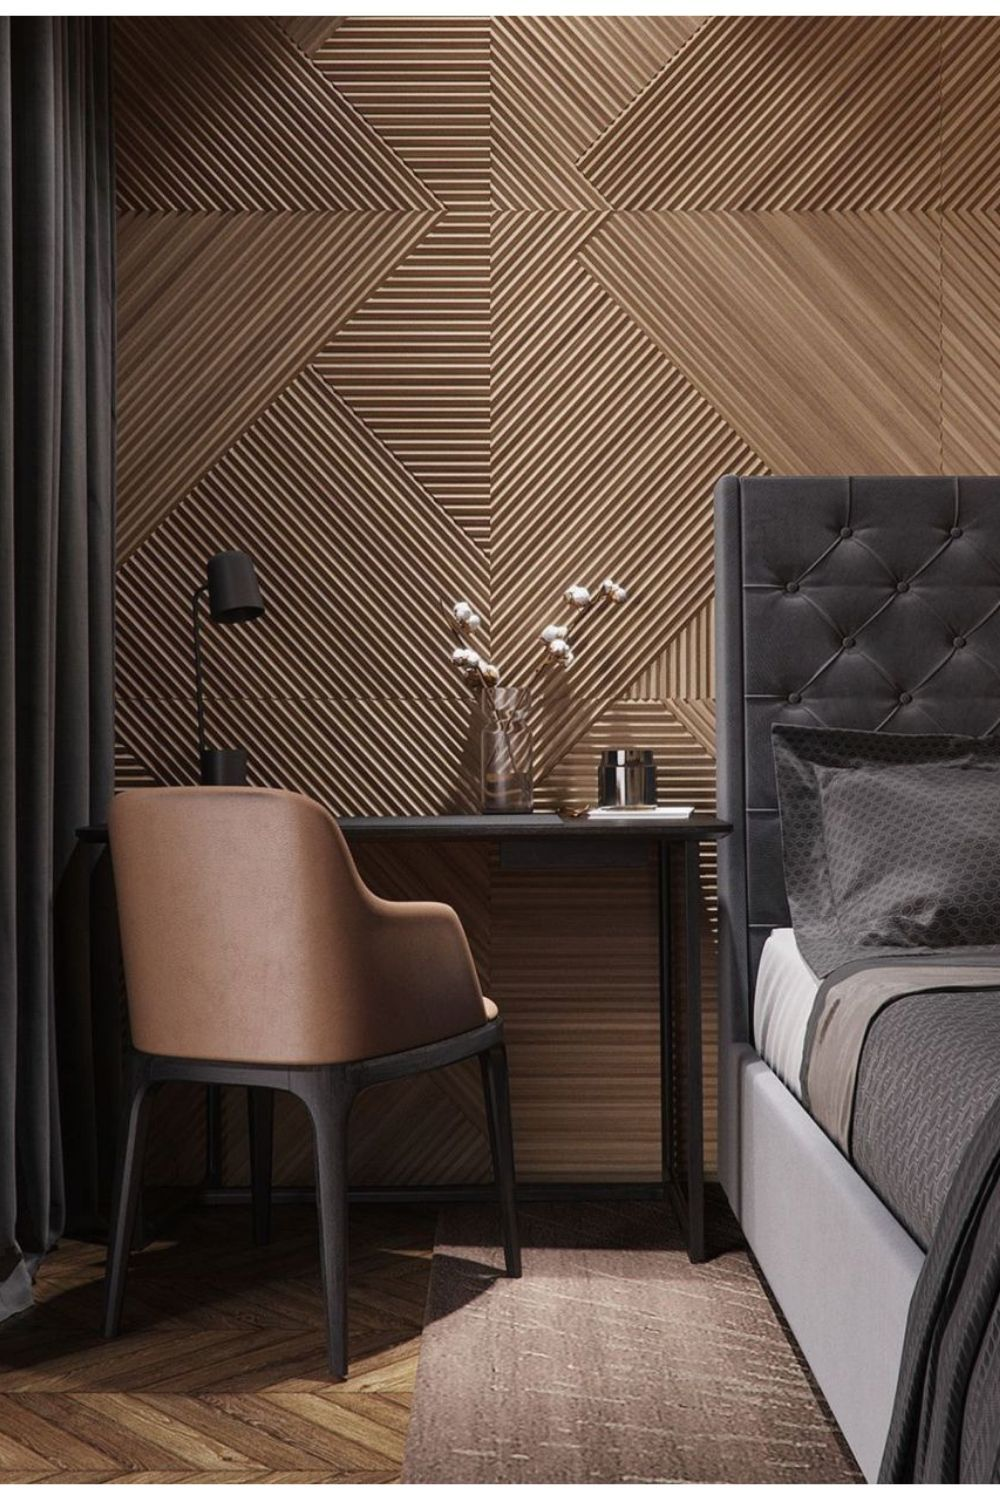 Most Unique Wall Texture Design Paint Techniques Everything You Need To Know 806 Walltexture Wallpaper Hotel Room Design Bedroom Interior Bedroom Design